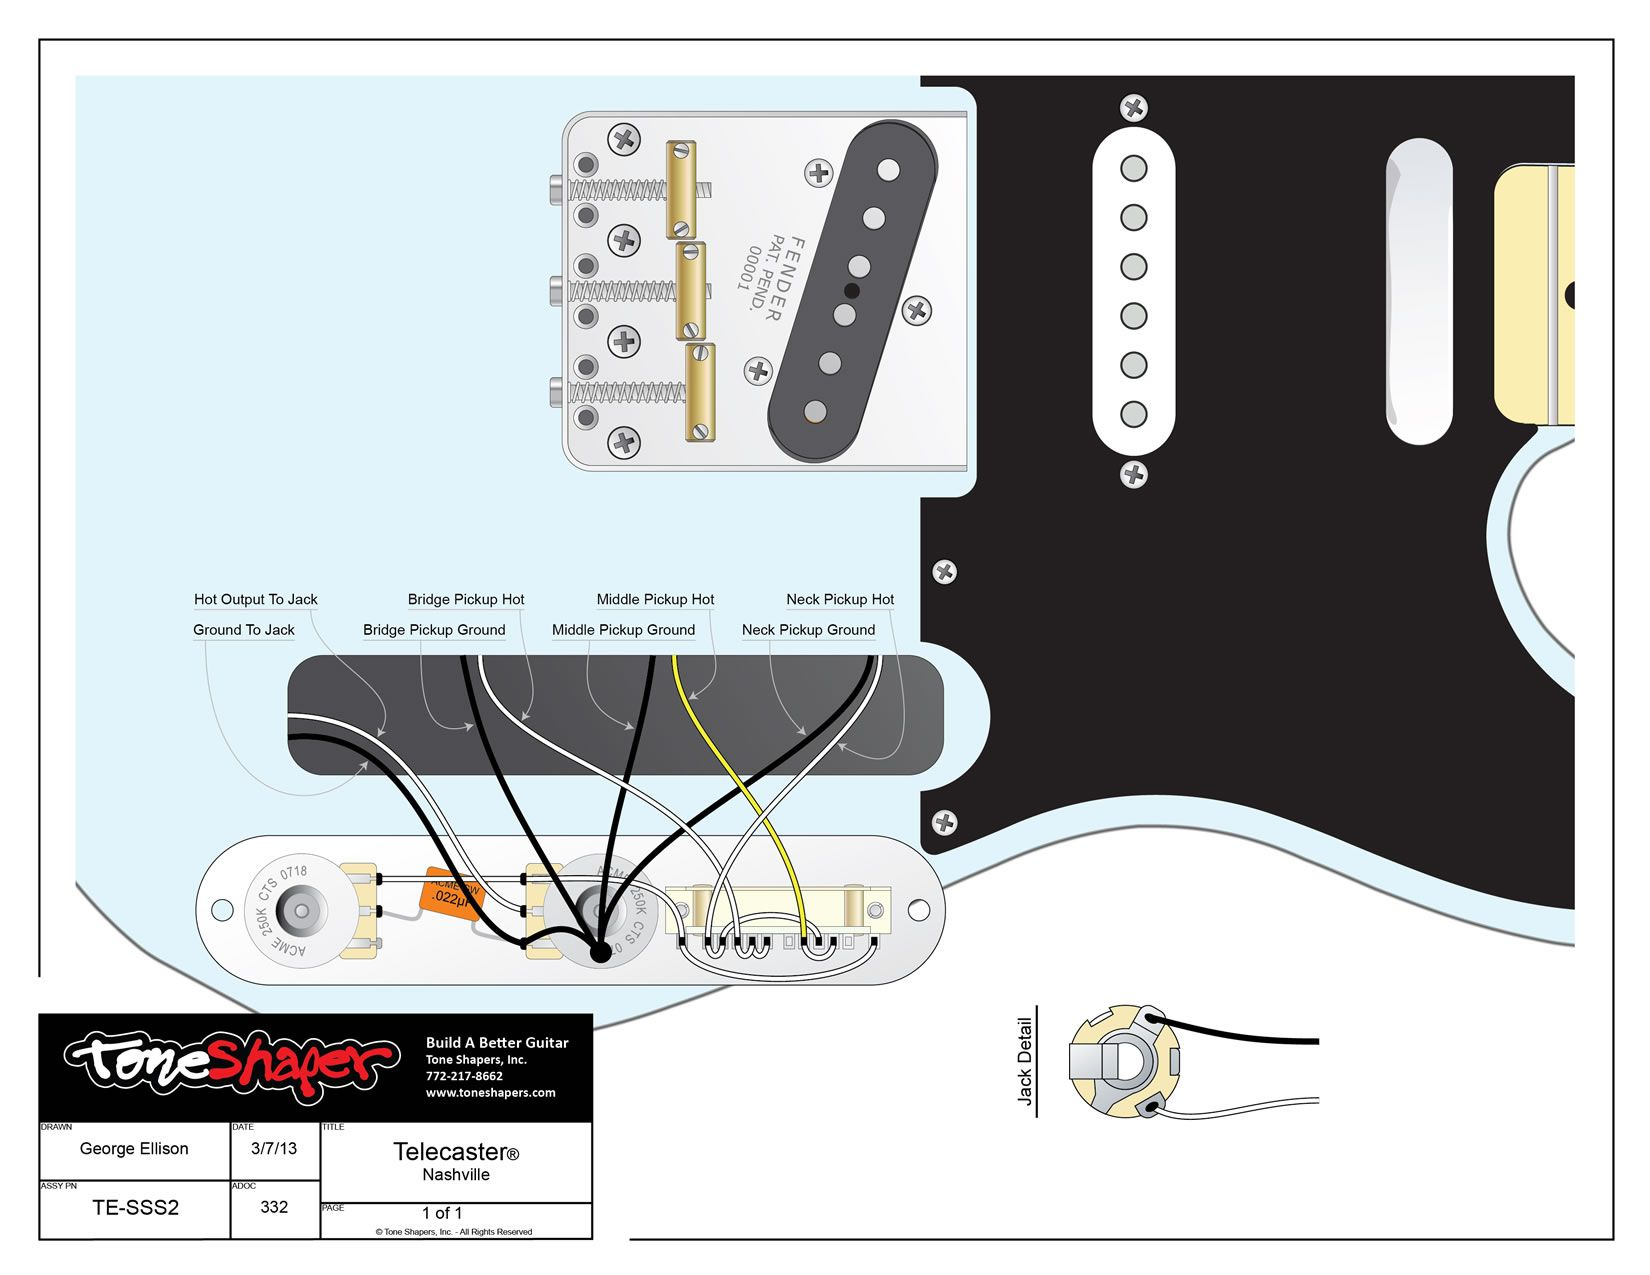 [SCHEMATICS_48ZD]  DM_5561] Wiring Diagram Together With Brent Mason Telecaster Wiring Diagram  Free Diagram | Fender Deluxe Nashville Telecaster Wiring Diagram Free Picture |  | Getap Opein Getap Xempag Mohammedshrine Librar Wiring 101